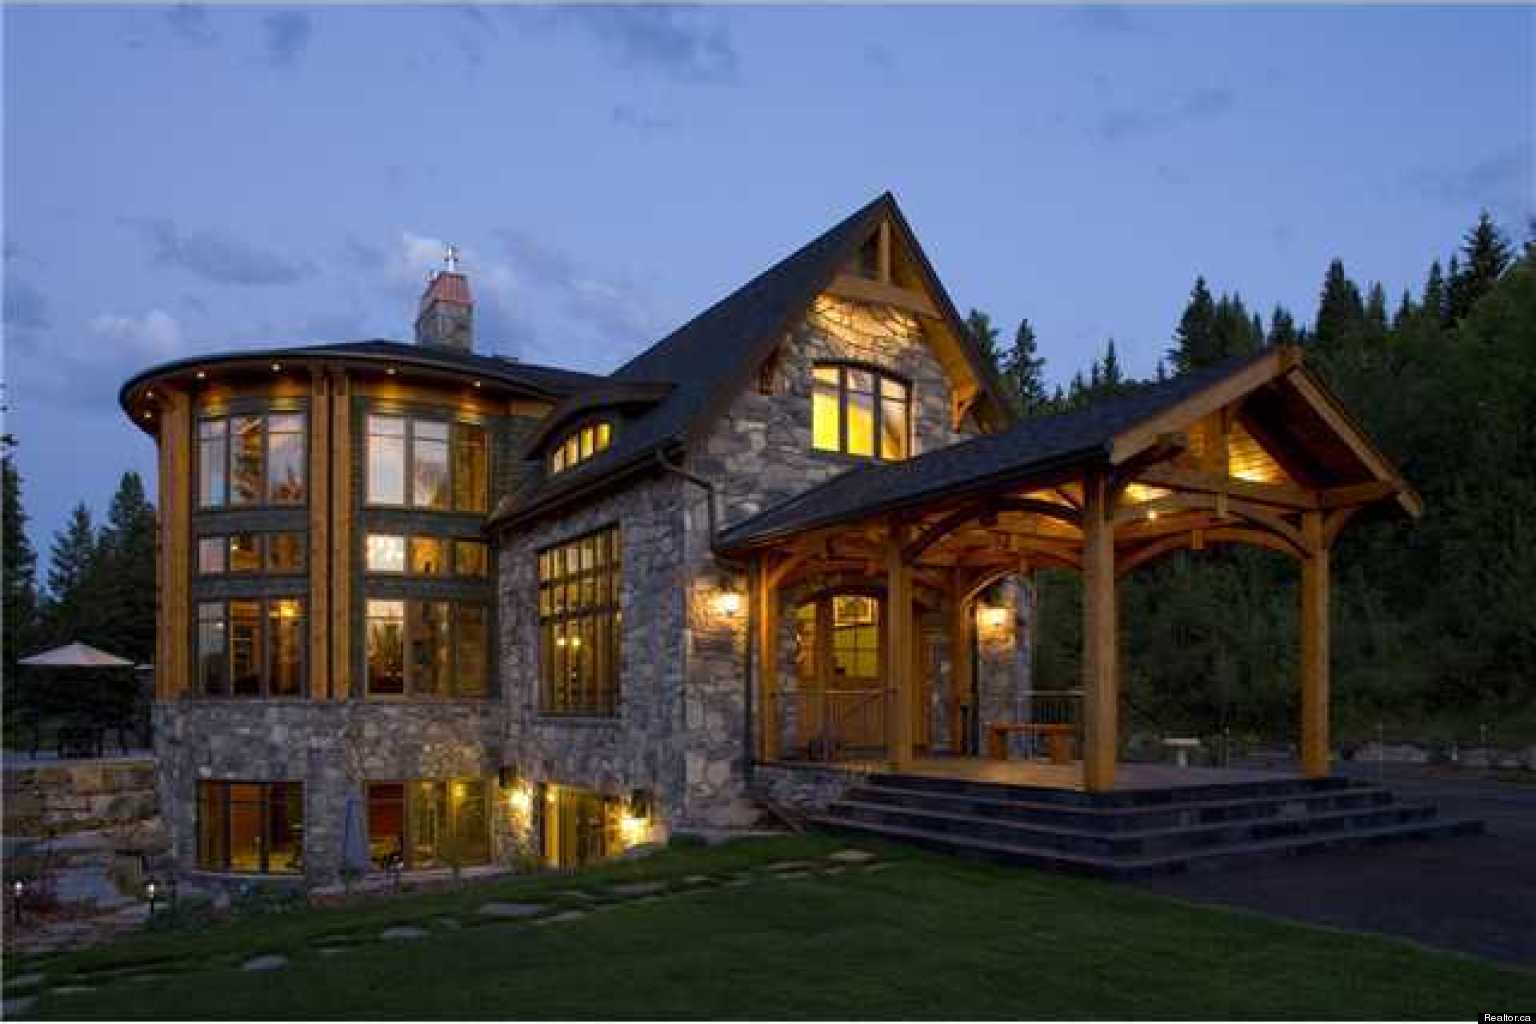 Most expensive houses for sale in calgary photos october 2012 edition Homes with lots of beautiful natural wood